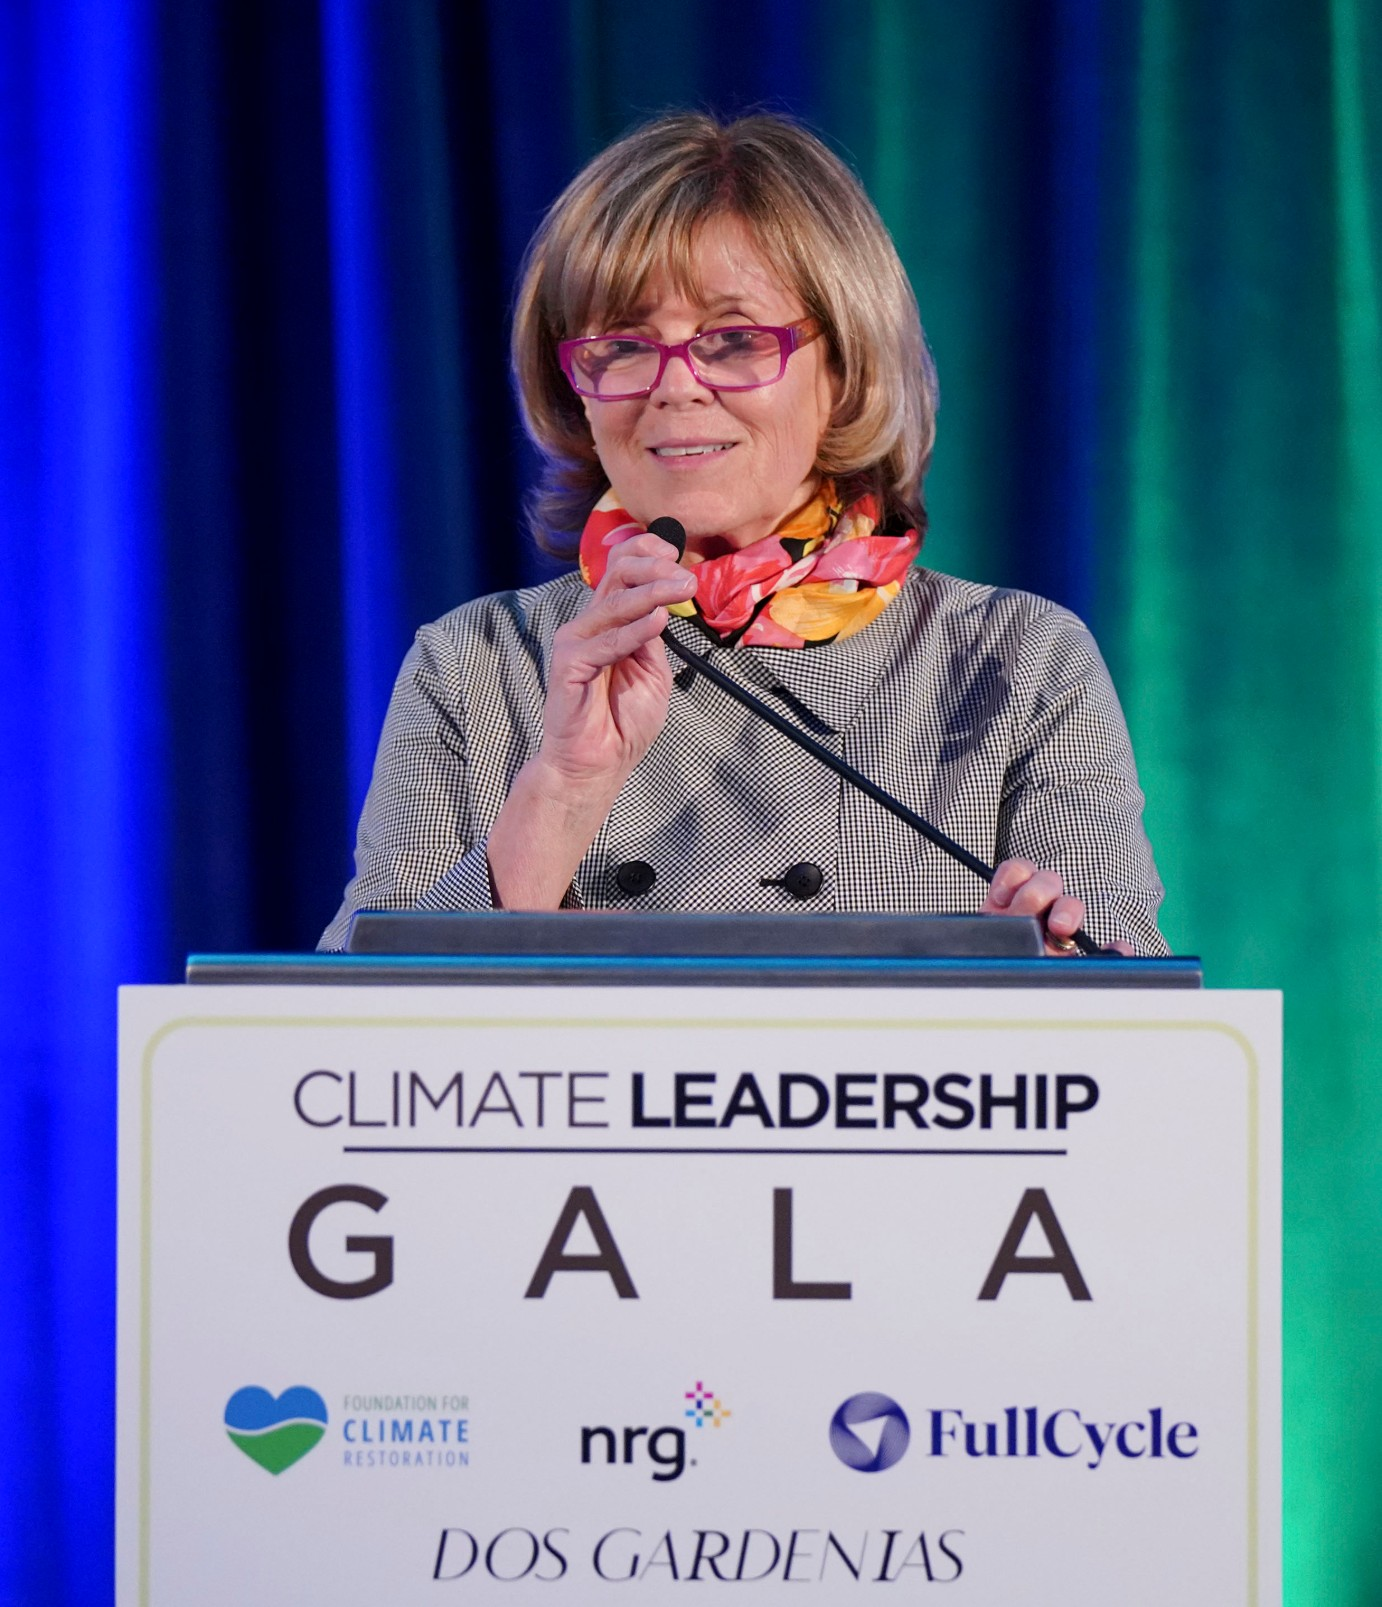 Kathleen Rogers: We have failed to build a broad and diverse environmental community worldwide and we are not putting enough pressure on our governments to deal with climate change and develop sustainably